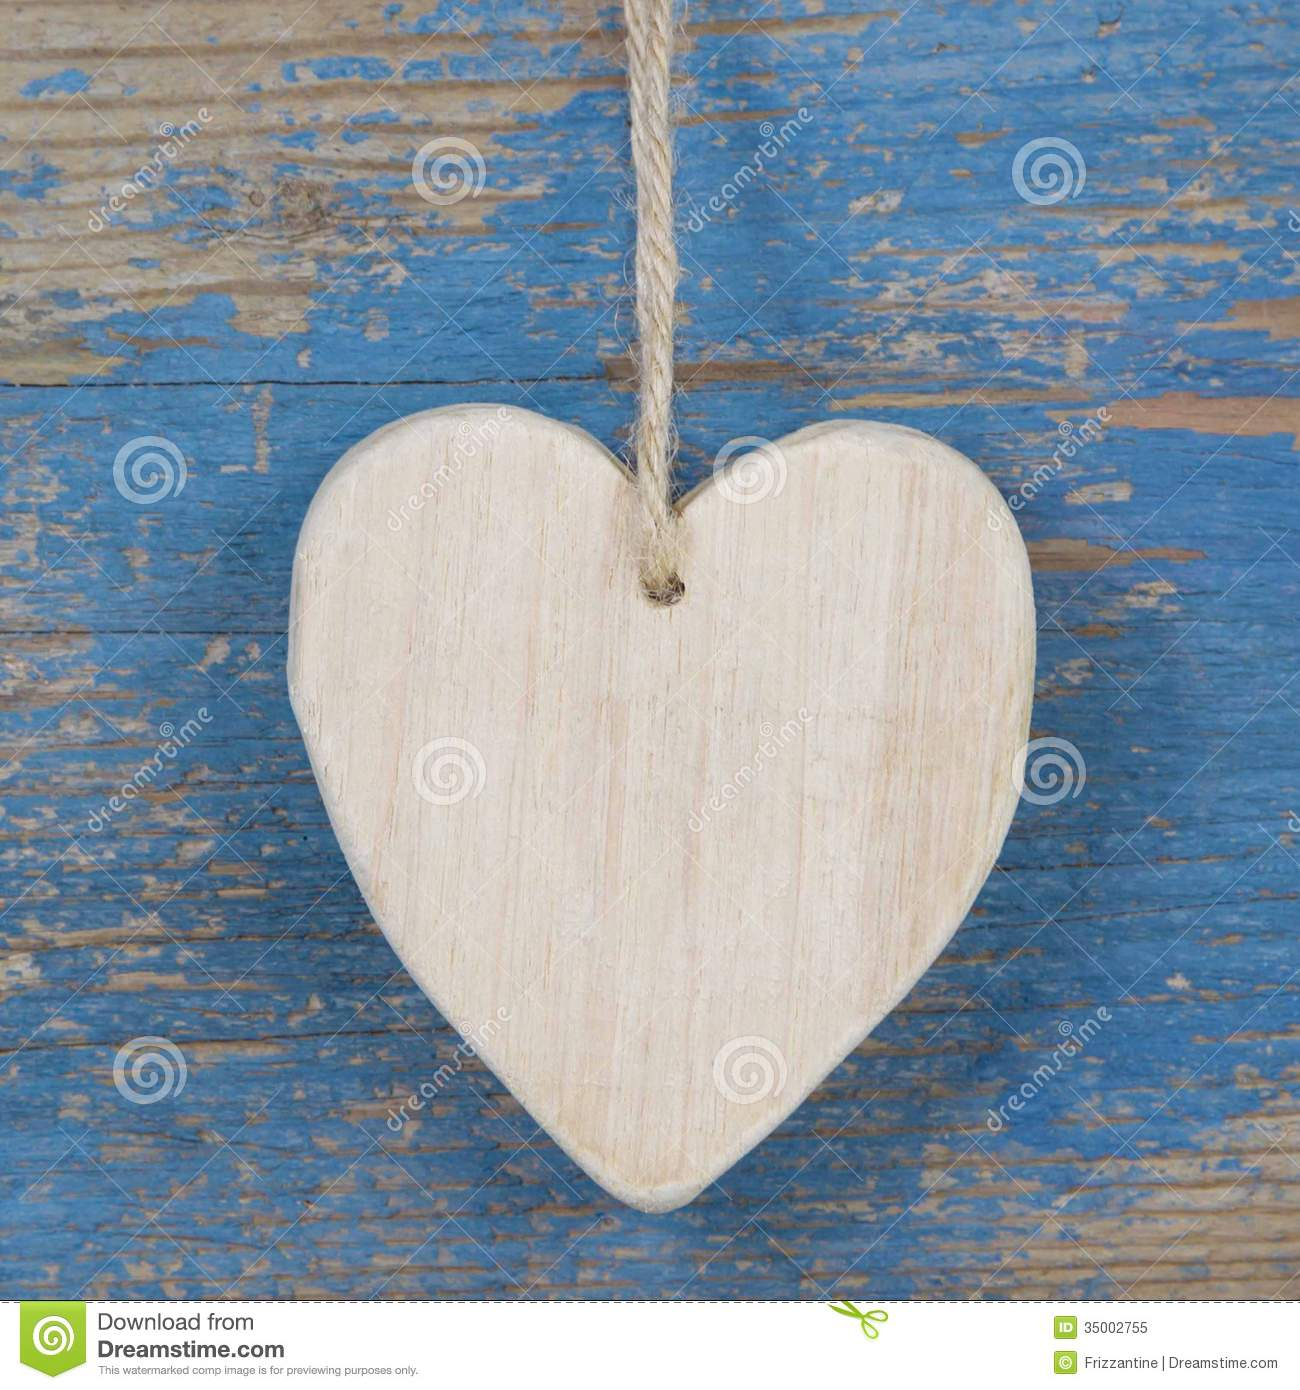 Wooden Heart Shape On Blue Wooden Surface For Valentine Birthda Royalty Free Stock Photo